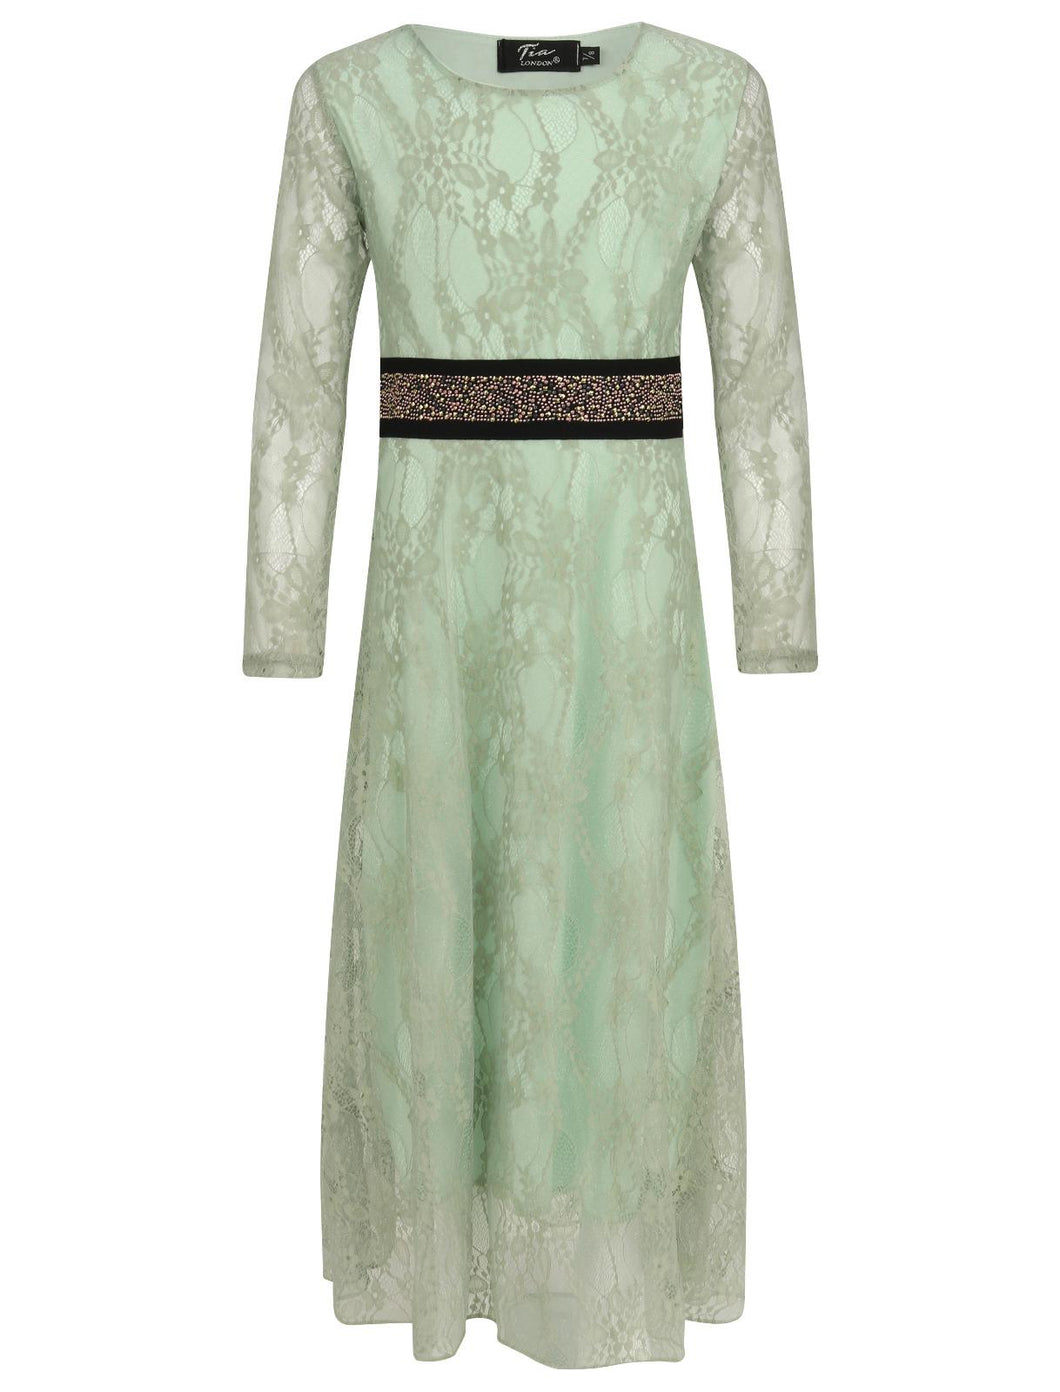 KD 13 MINT GREEN DRESS WITH LACE